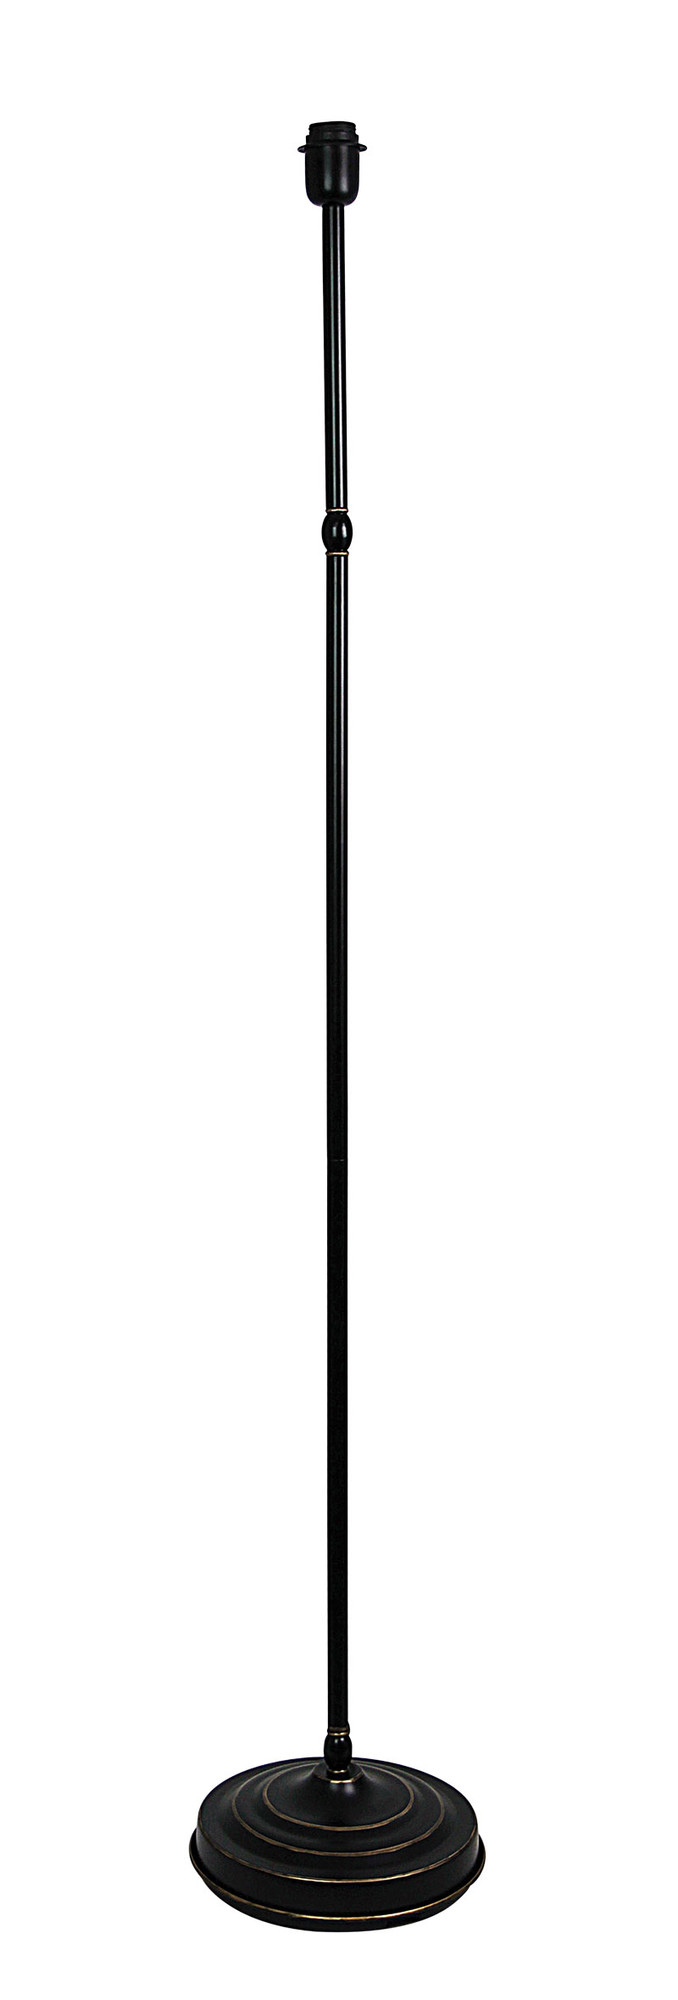 hamptons style floor lamp base  temple  webster - sku orib hamptons style floor lamp base is also sometimes listed underthe following manufacturer numbers slrb